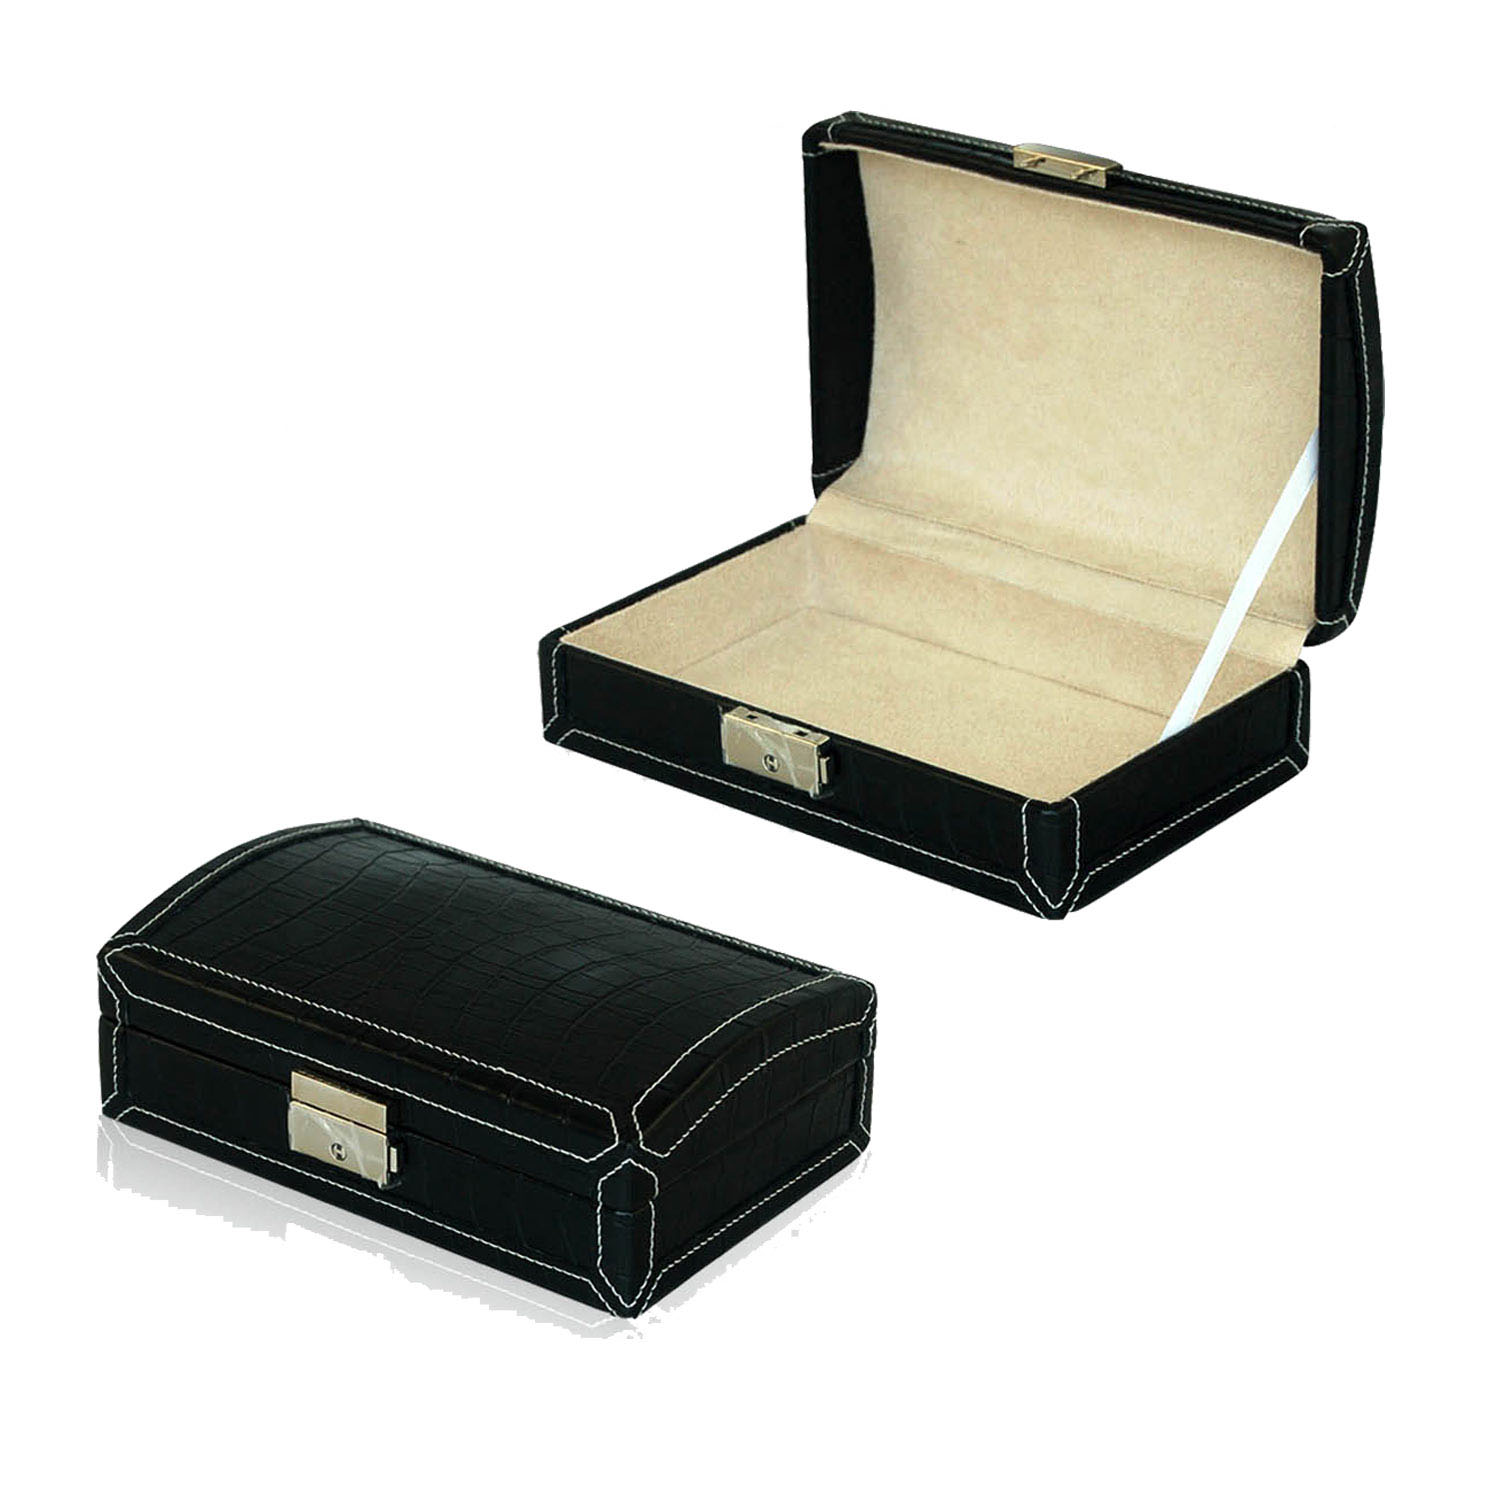 Wholesales Custom Recyclable Classic Wooden Leather Storage Gift Box With Strap